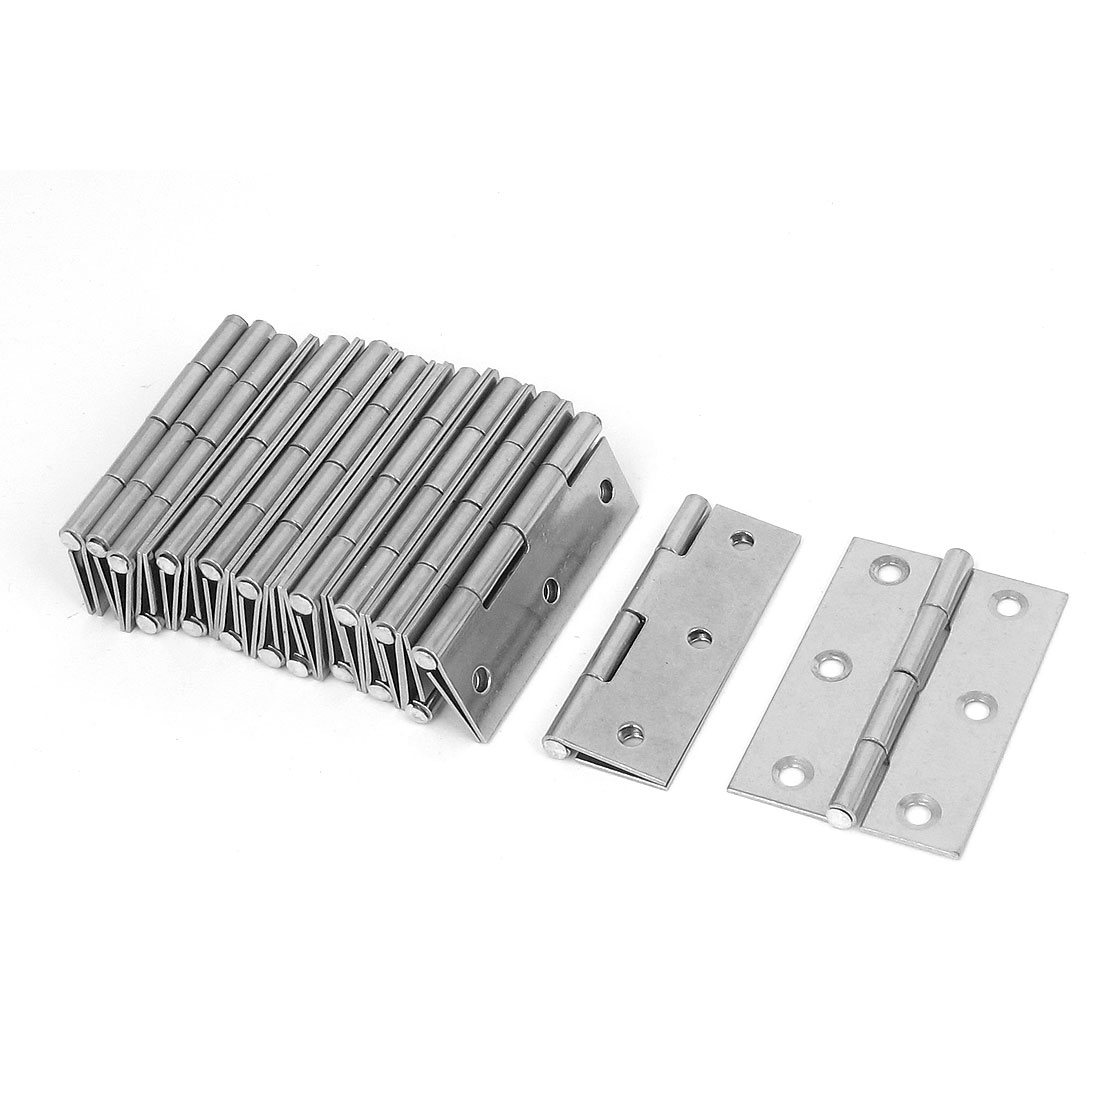 "10pcs 2.5"" Long Silver Tone Metal Rectangle Security Butt Hinge for Cabinet Drawer Door"